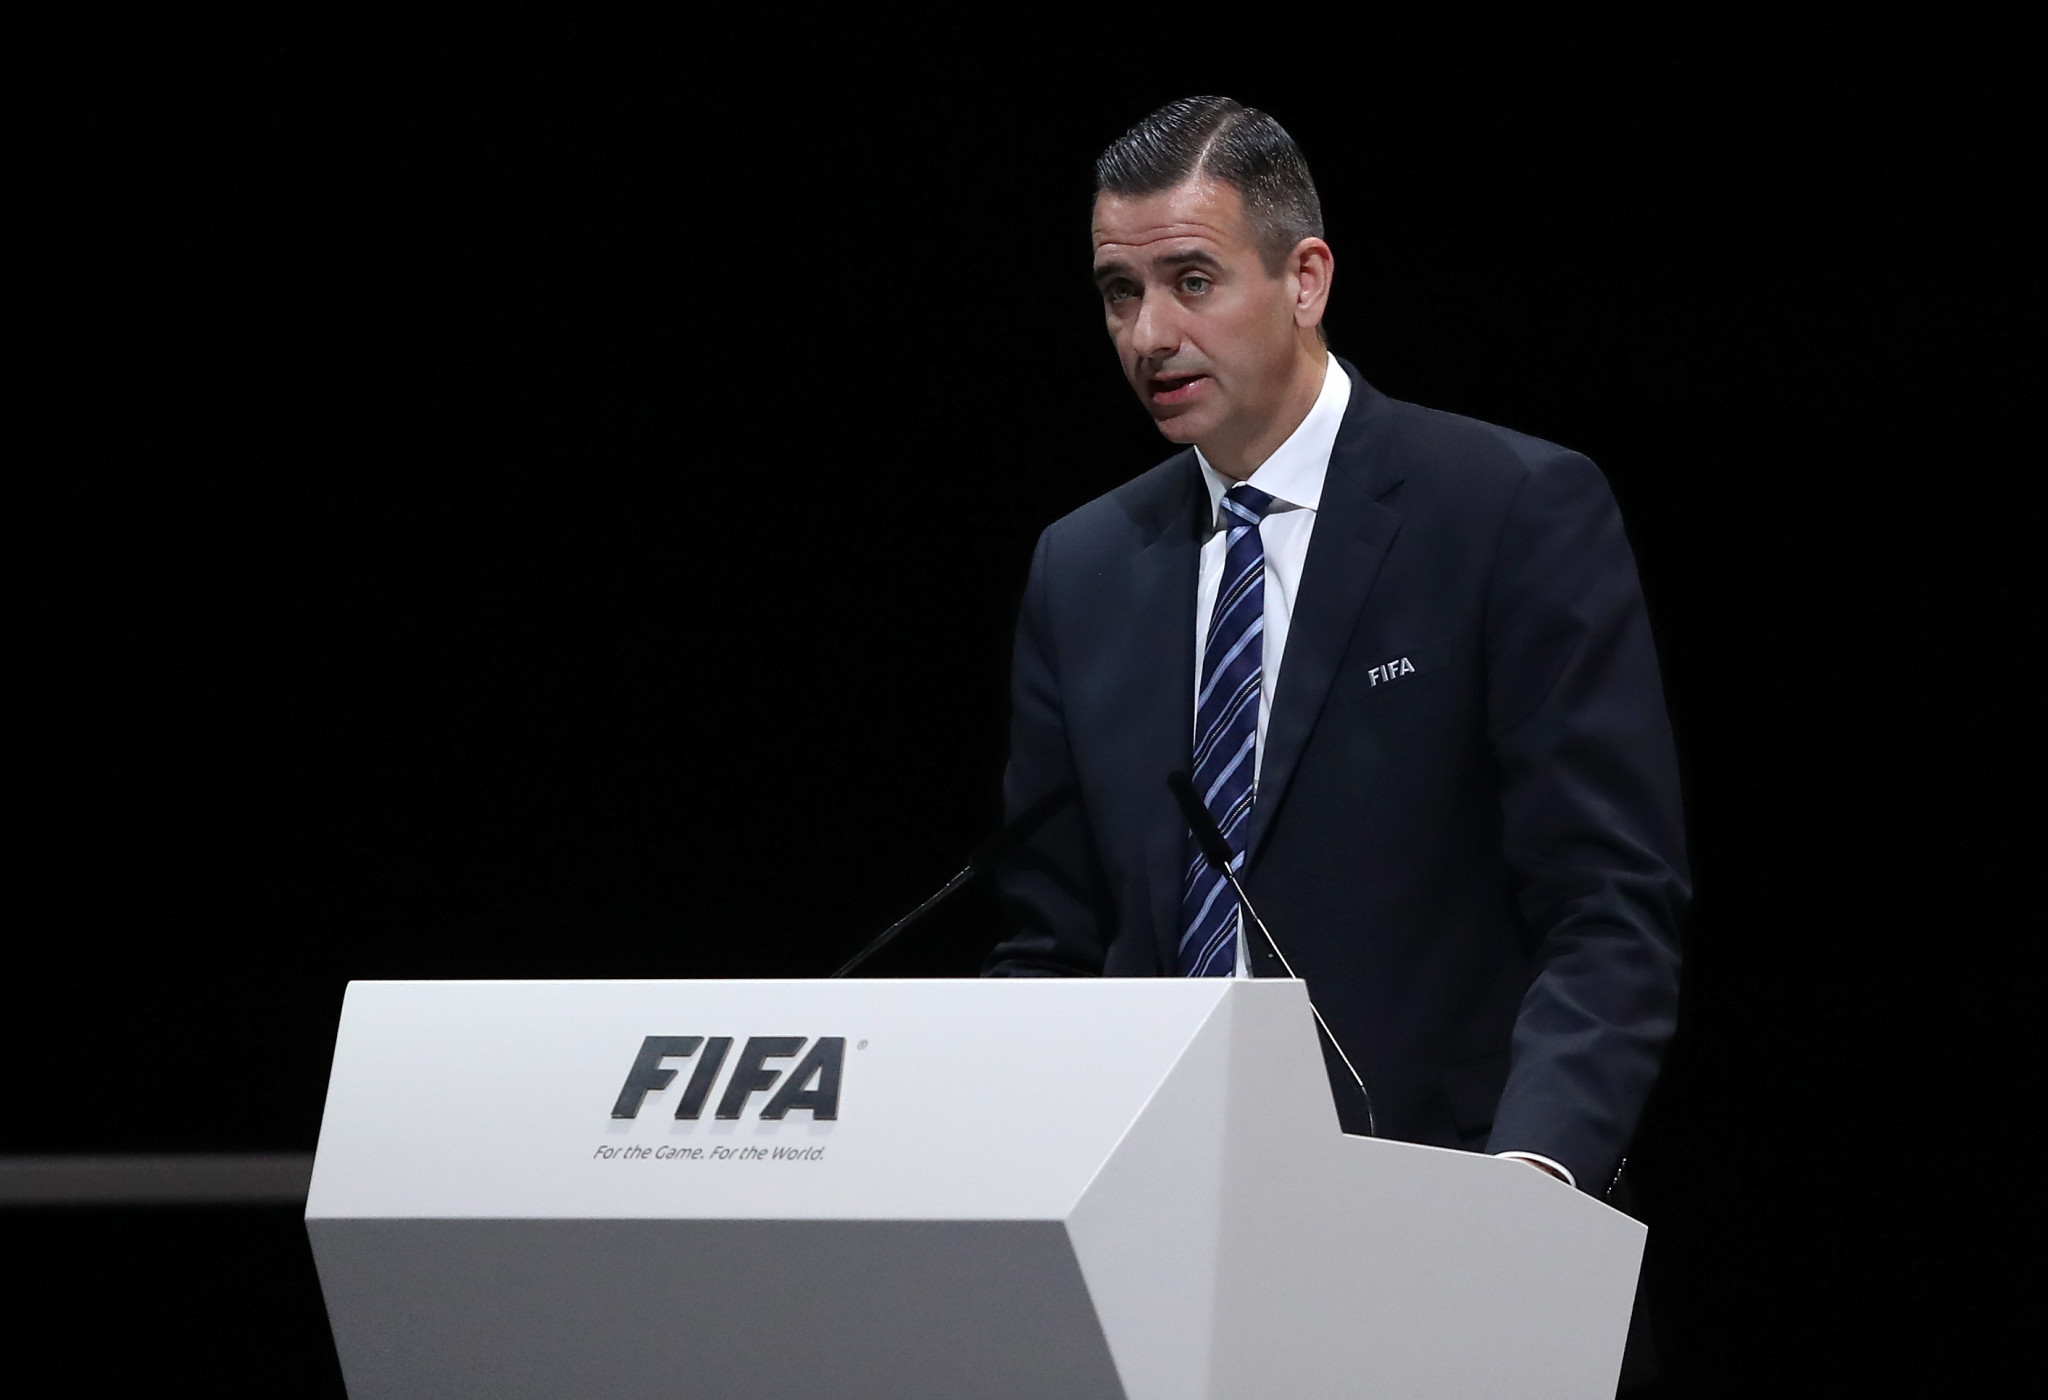 Ex-FIFA finance director Kattner banned from football for 10 years